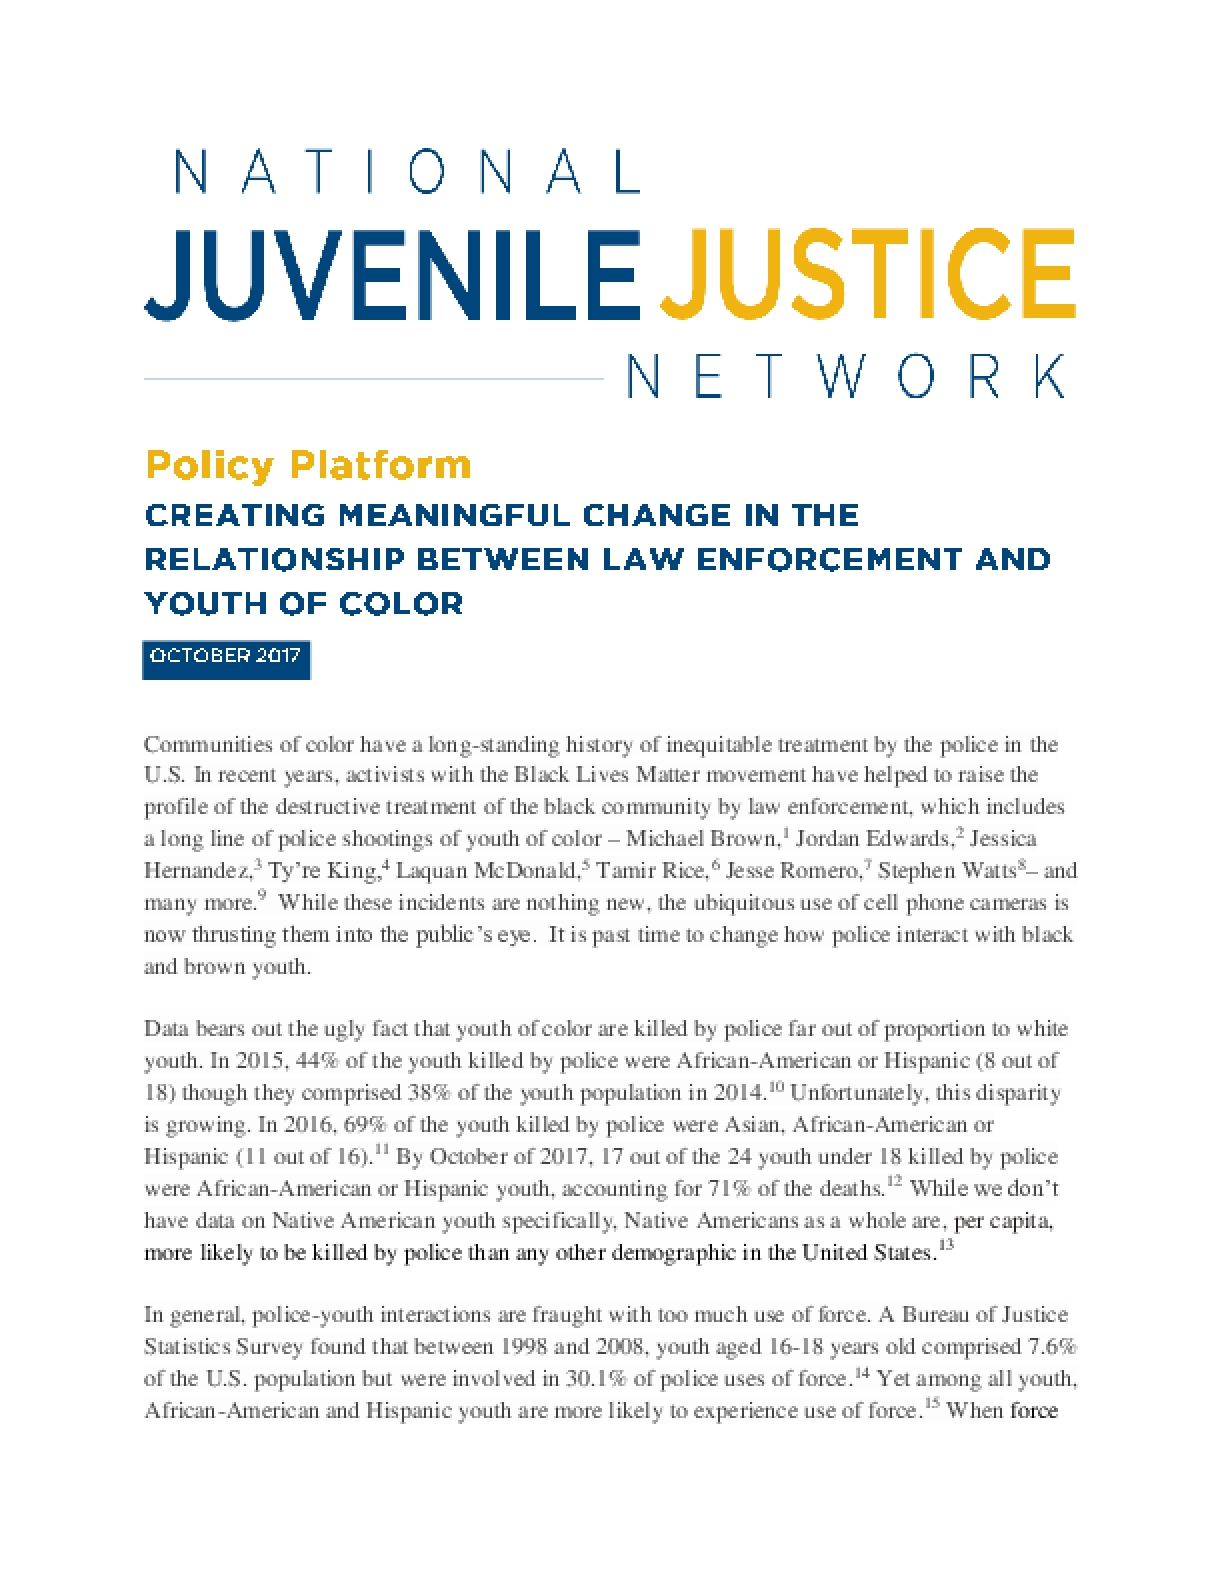 Creating Meaningful Change in the Relationship Between Law Enforcement and Youth of Color